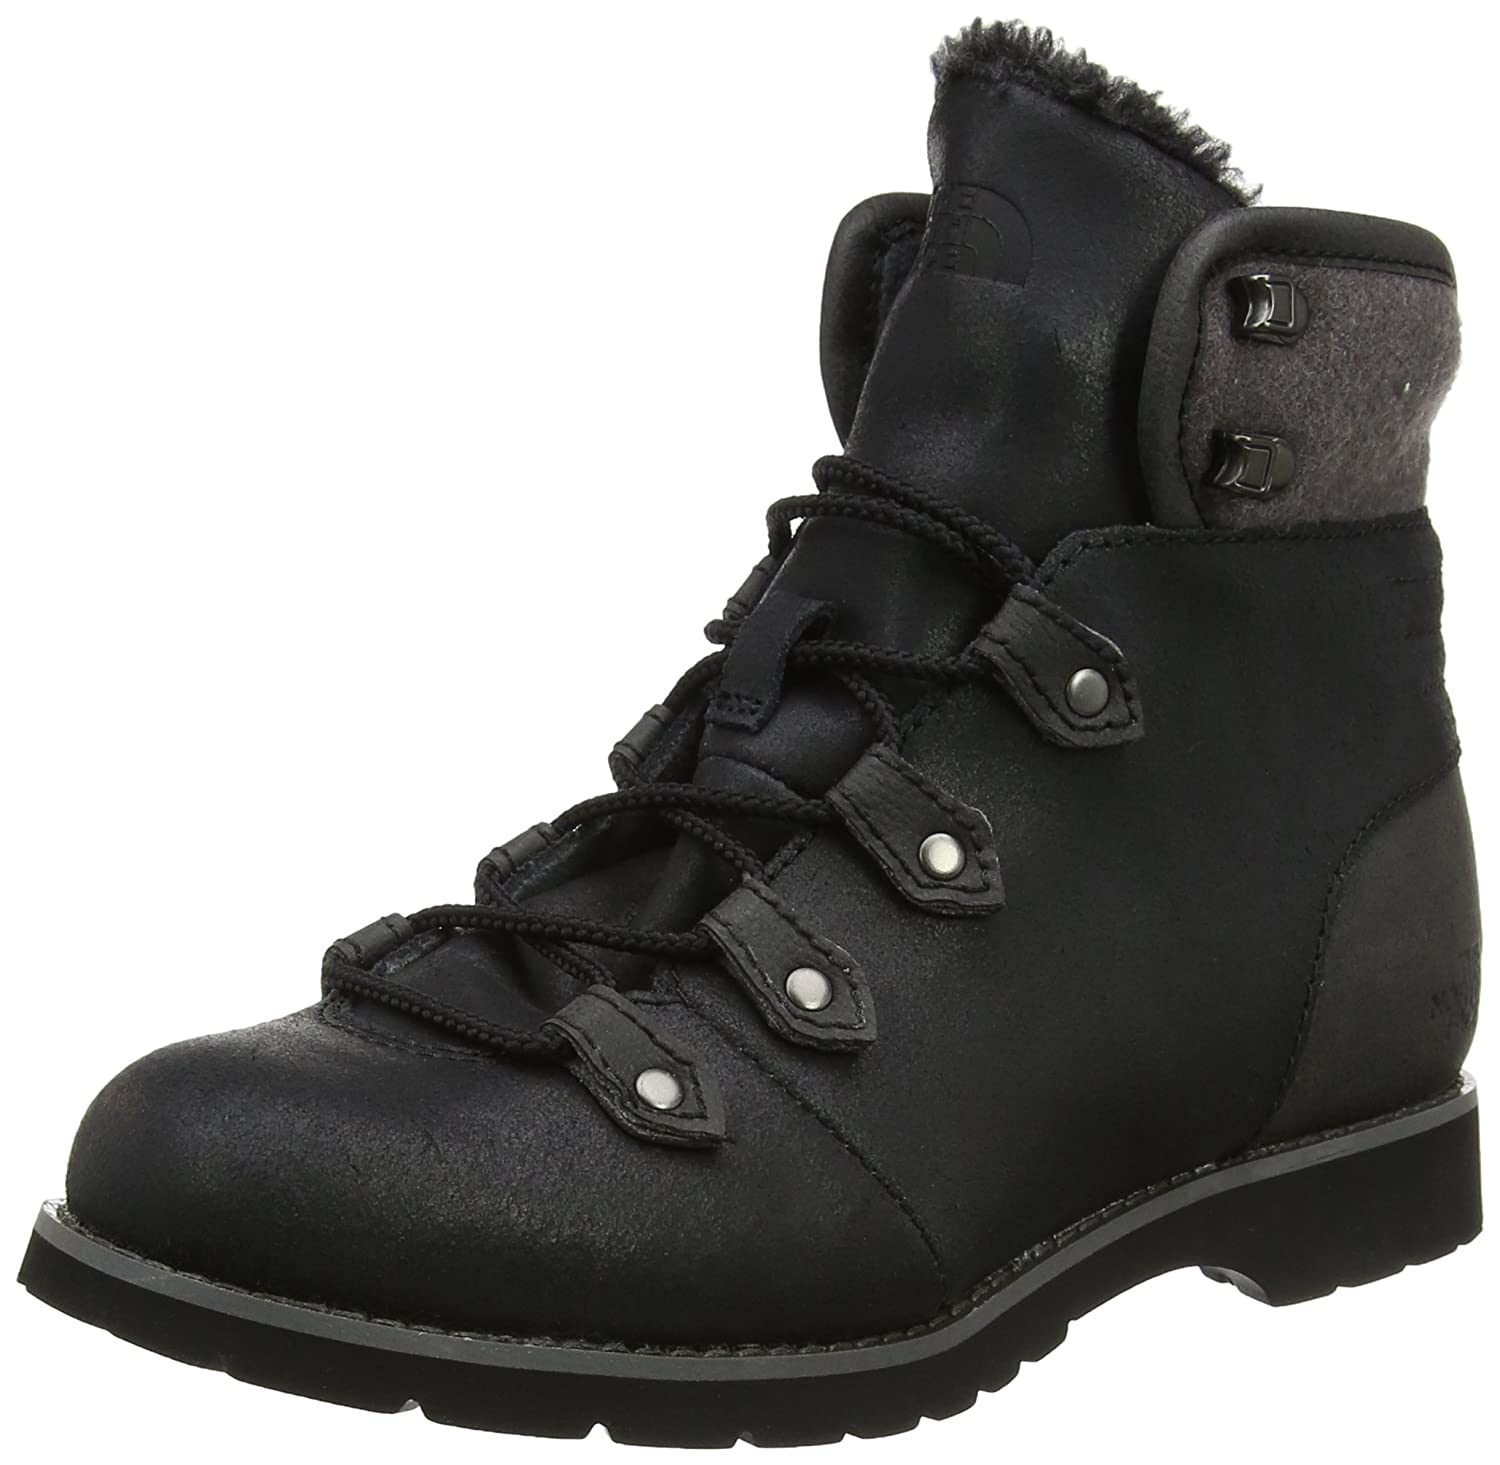 TALLA 37.5 EU. The North Face W Ballard BF Boot, Botas de Senderismo para Mujer